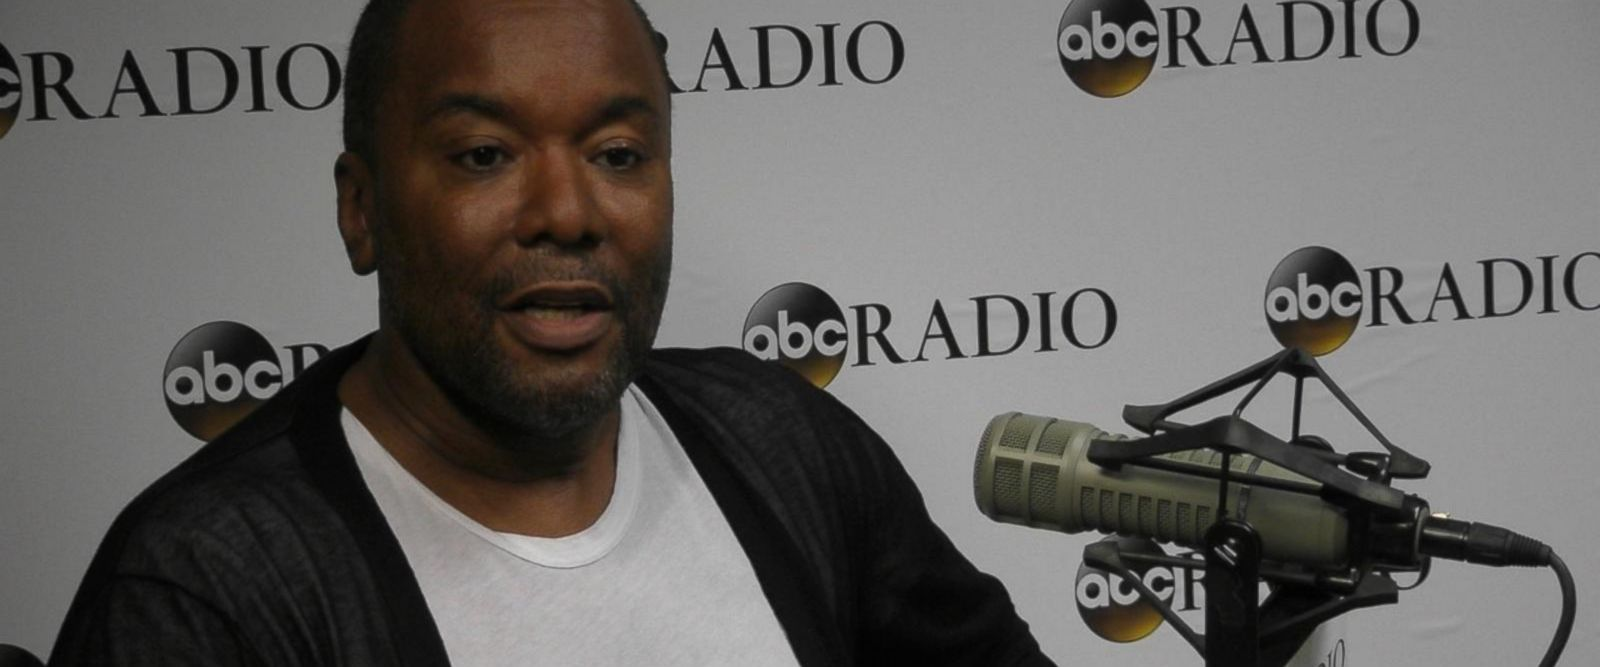 VIDEO: Lee Daniels talks new seasons of 'Empire' and 'Star' and his upcoming film projects